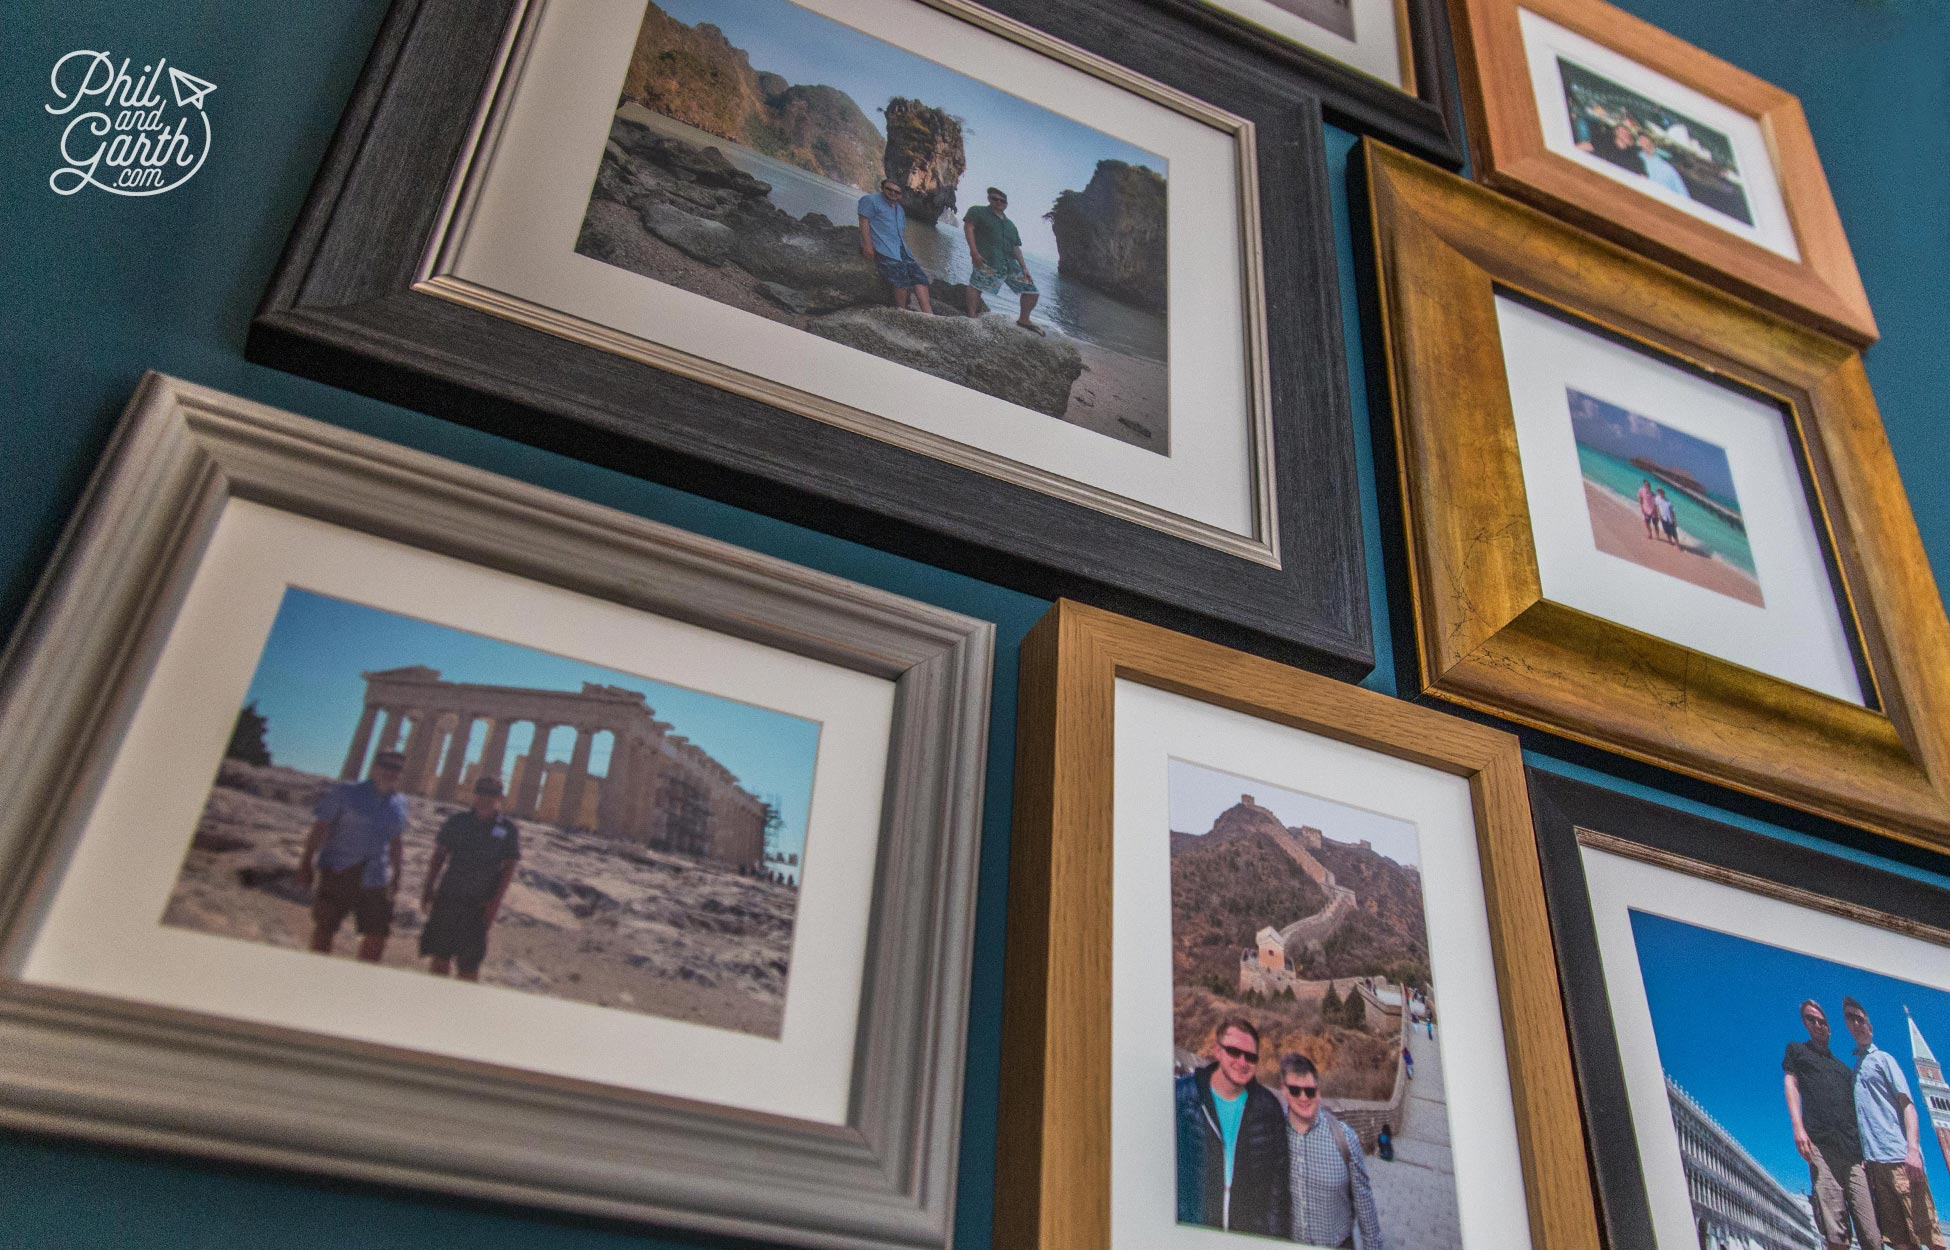 Our collection of photos at famous world landmarks